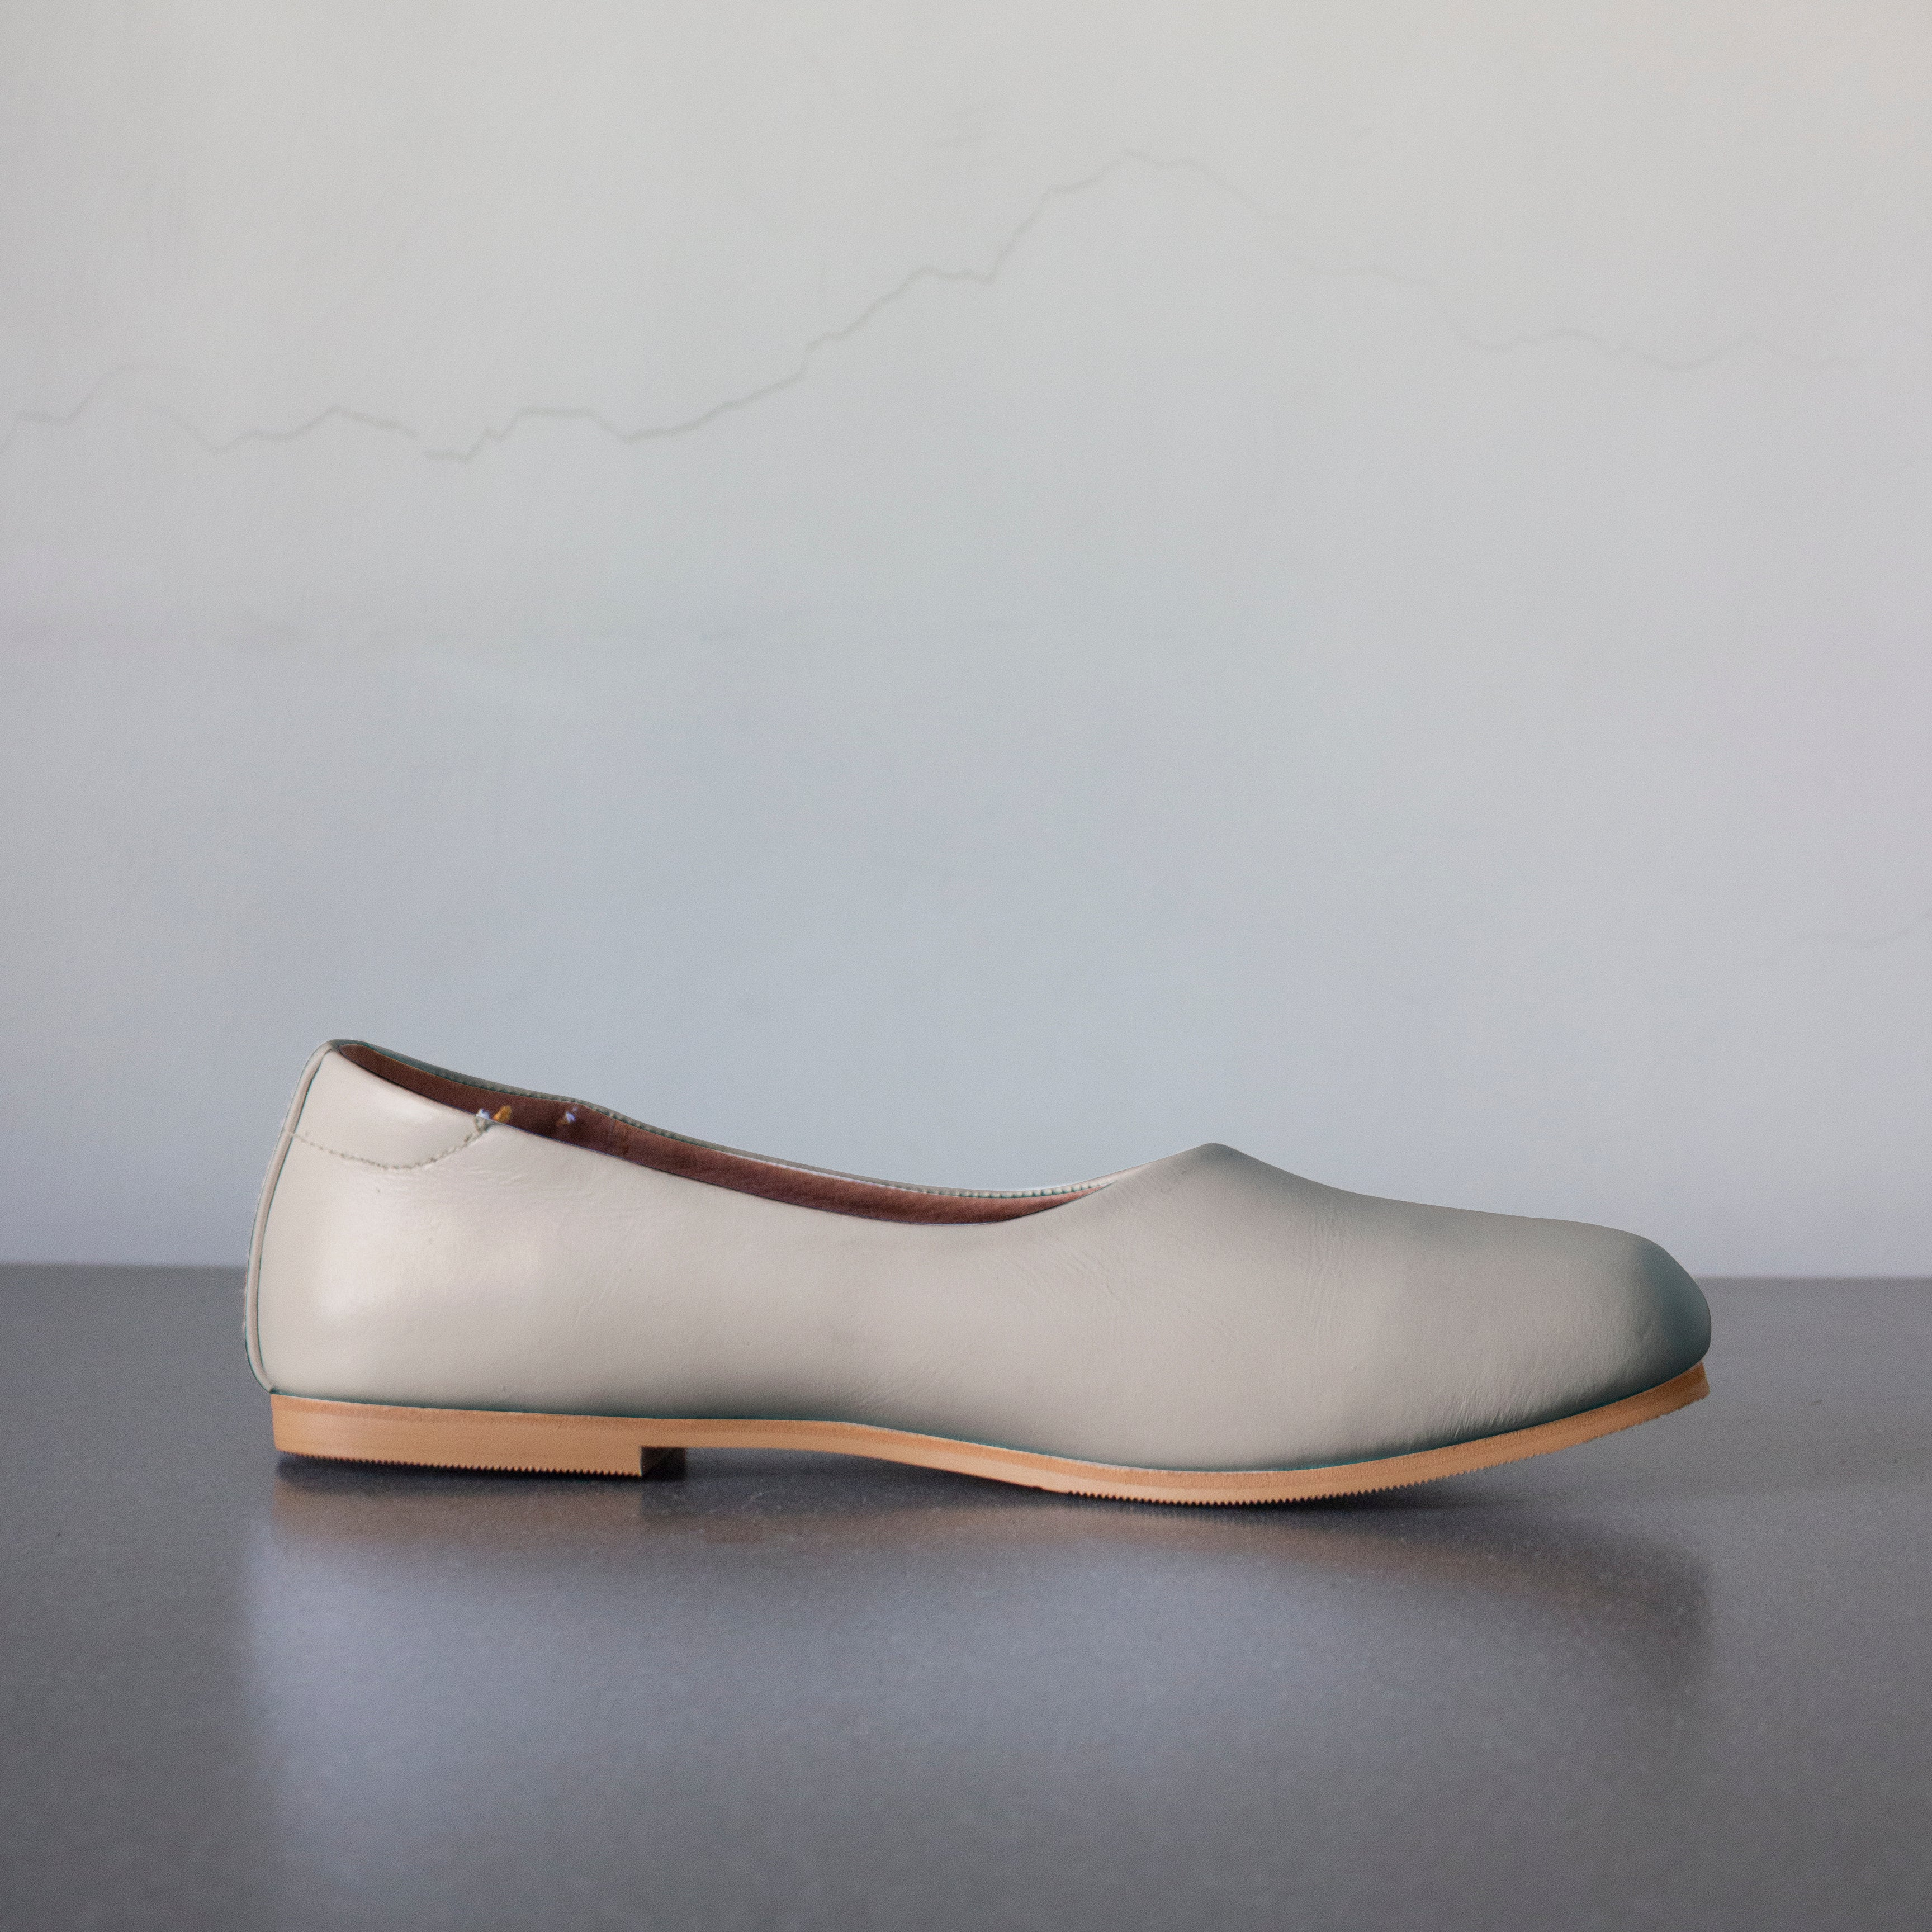 The Ballerine Flat in Antique White - andanté, flats - loafers, flats leather footwear